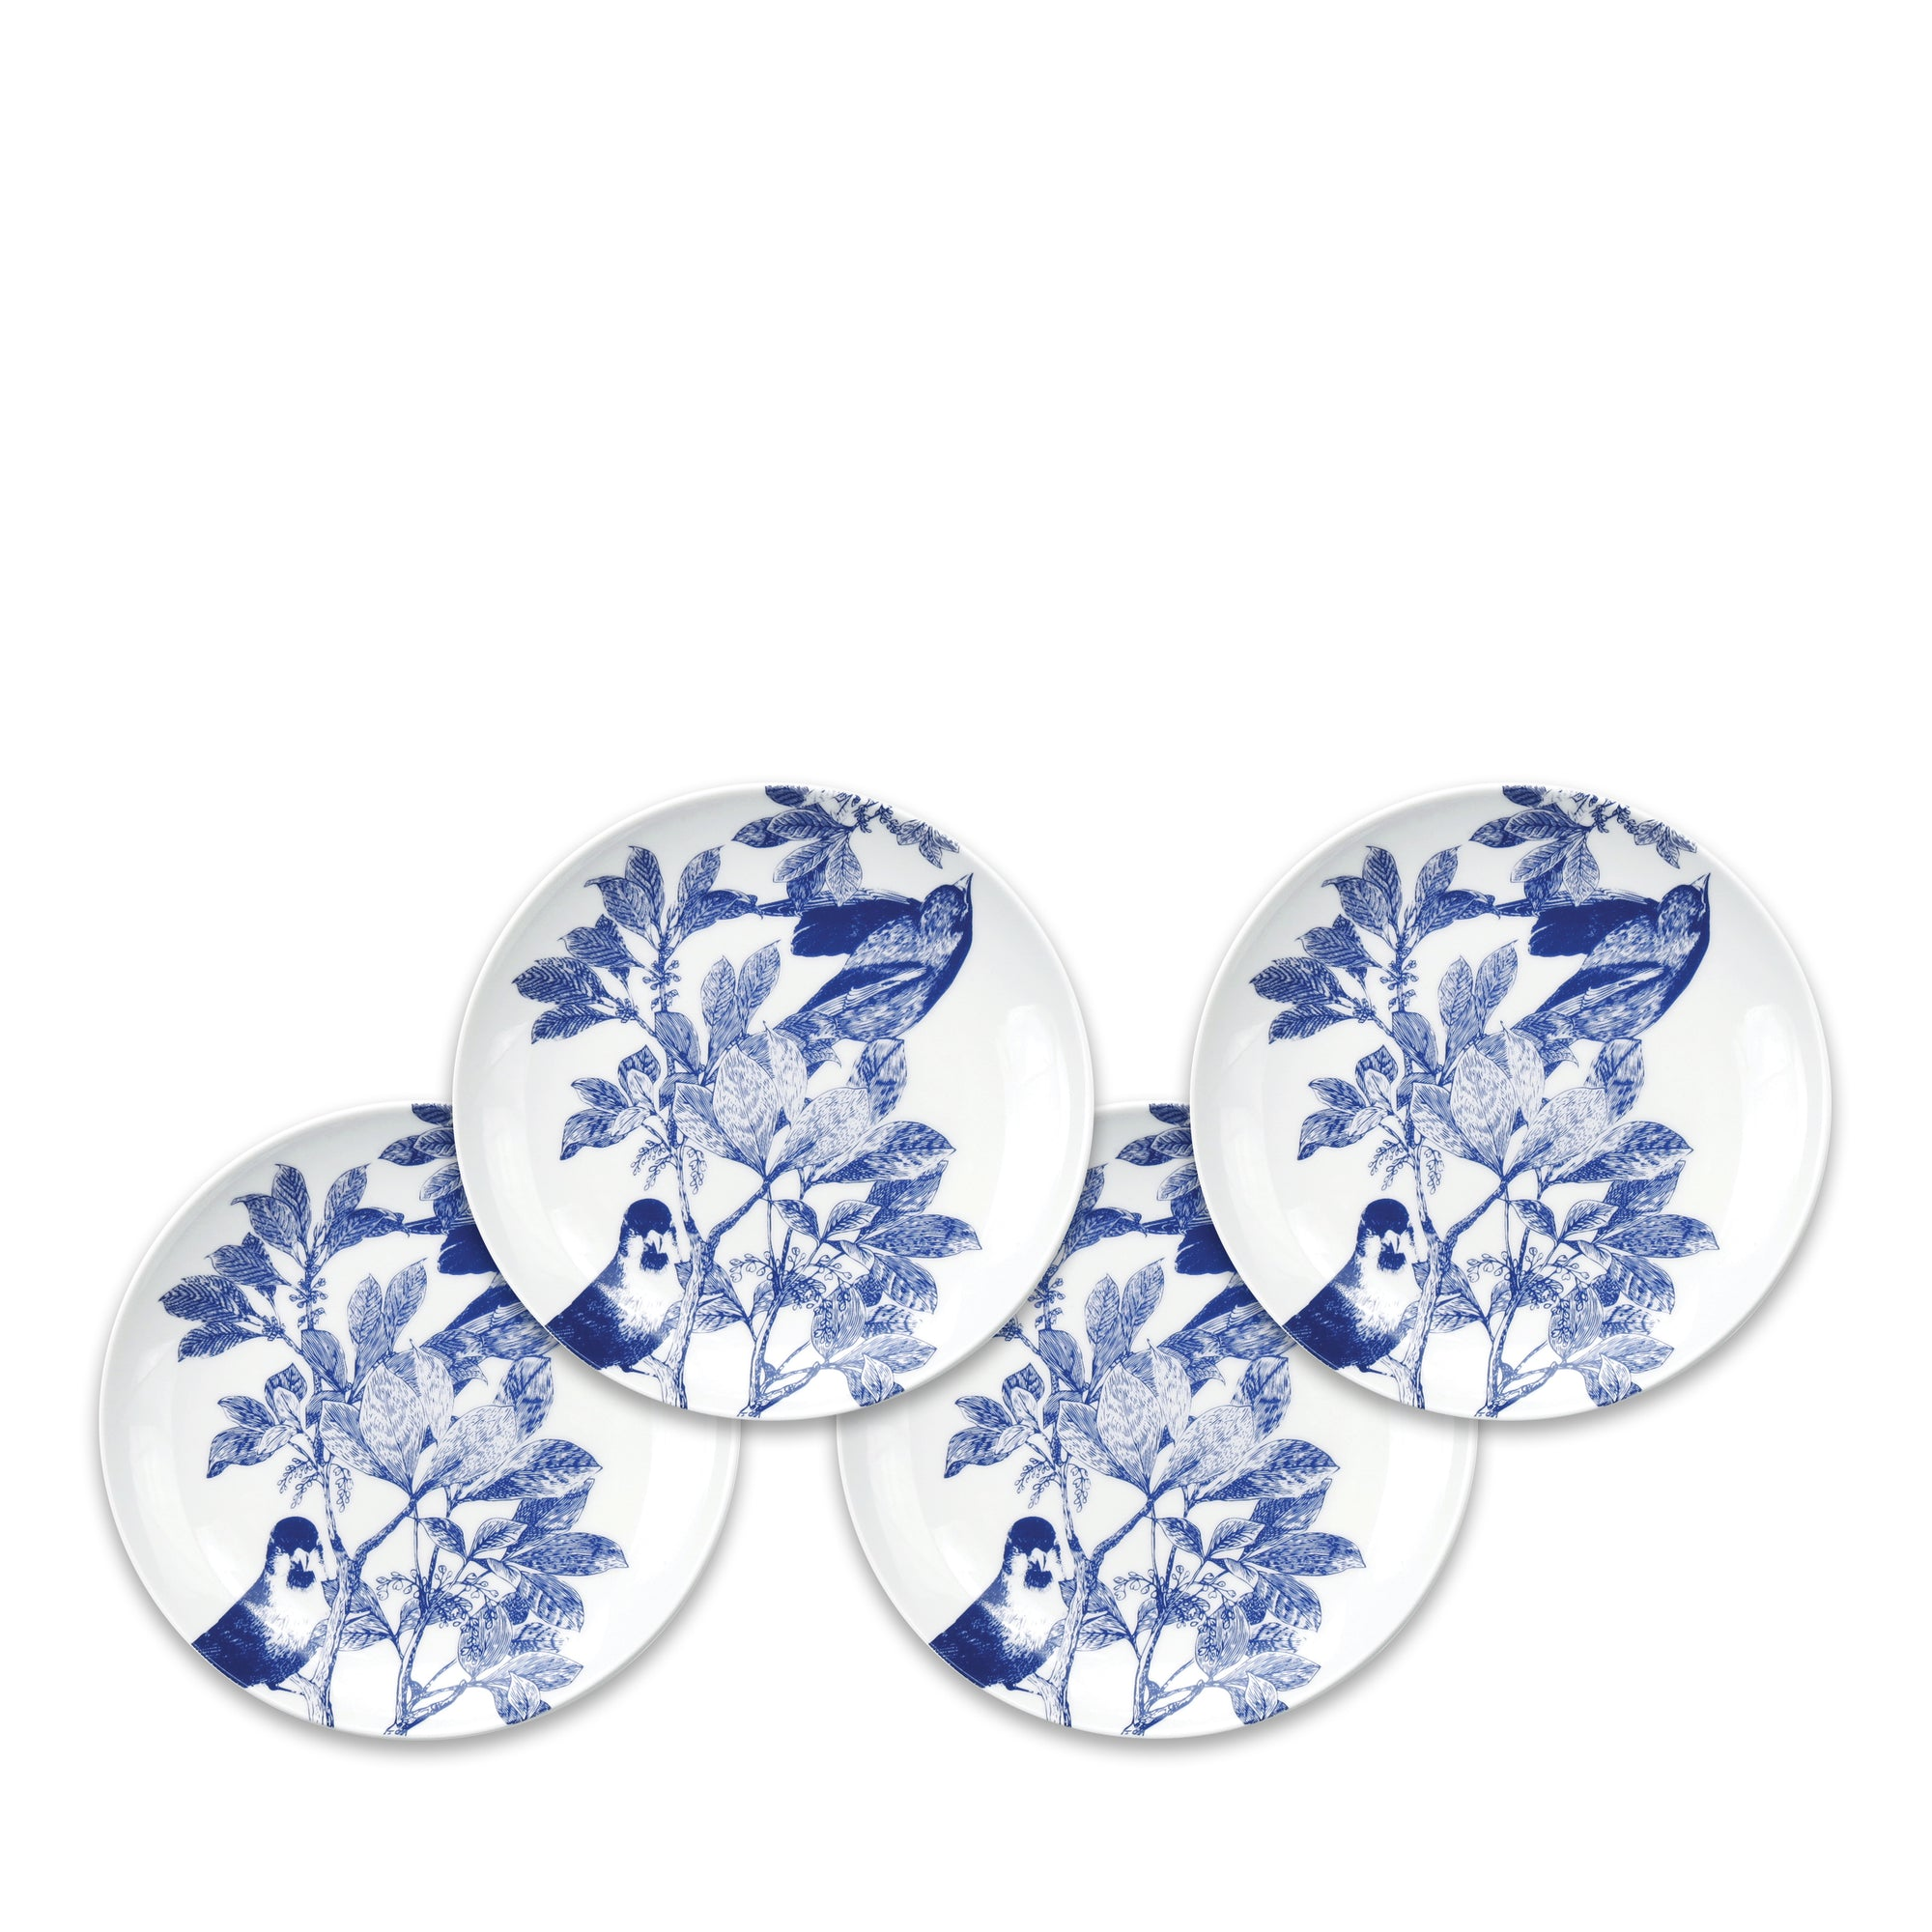 Blue Arbor Birds Canapé Plates Boxed Set/4 - Caskata